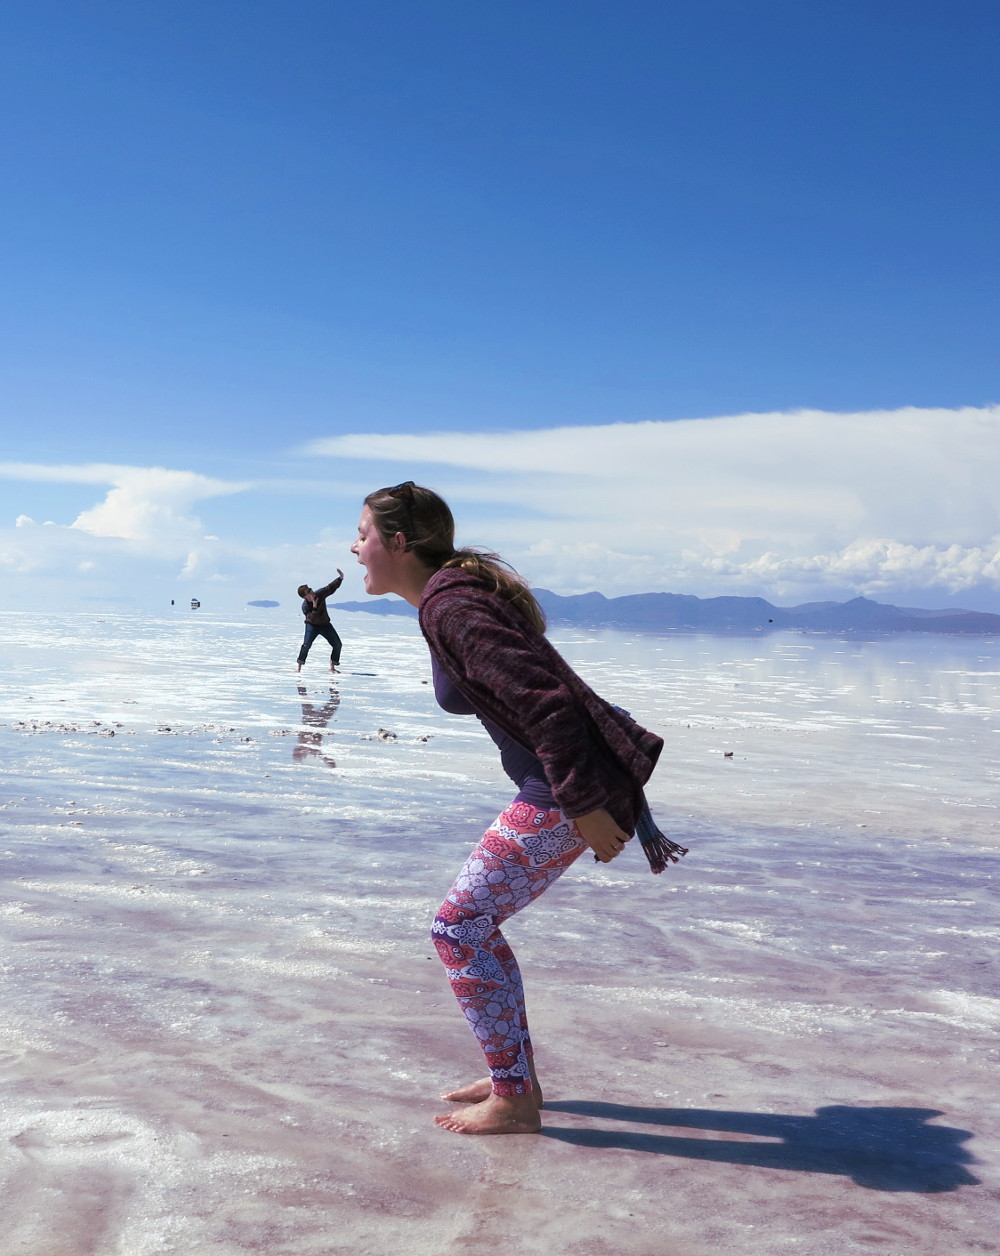 Carmen and Dave4 salt flats Bolivia Double-Barrelled Travel